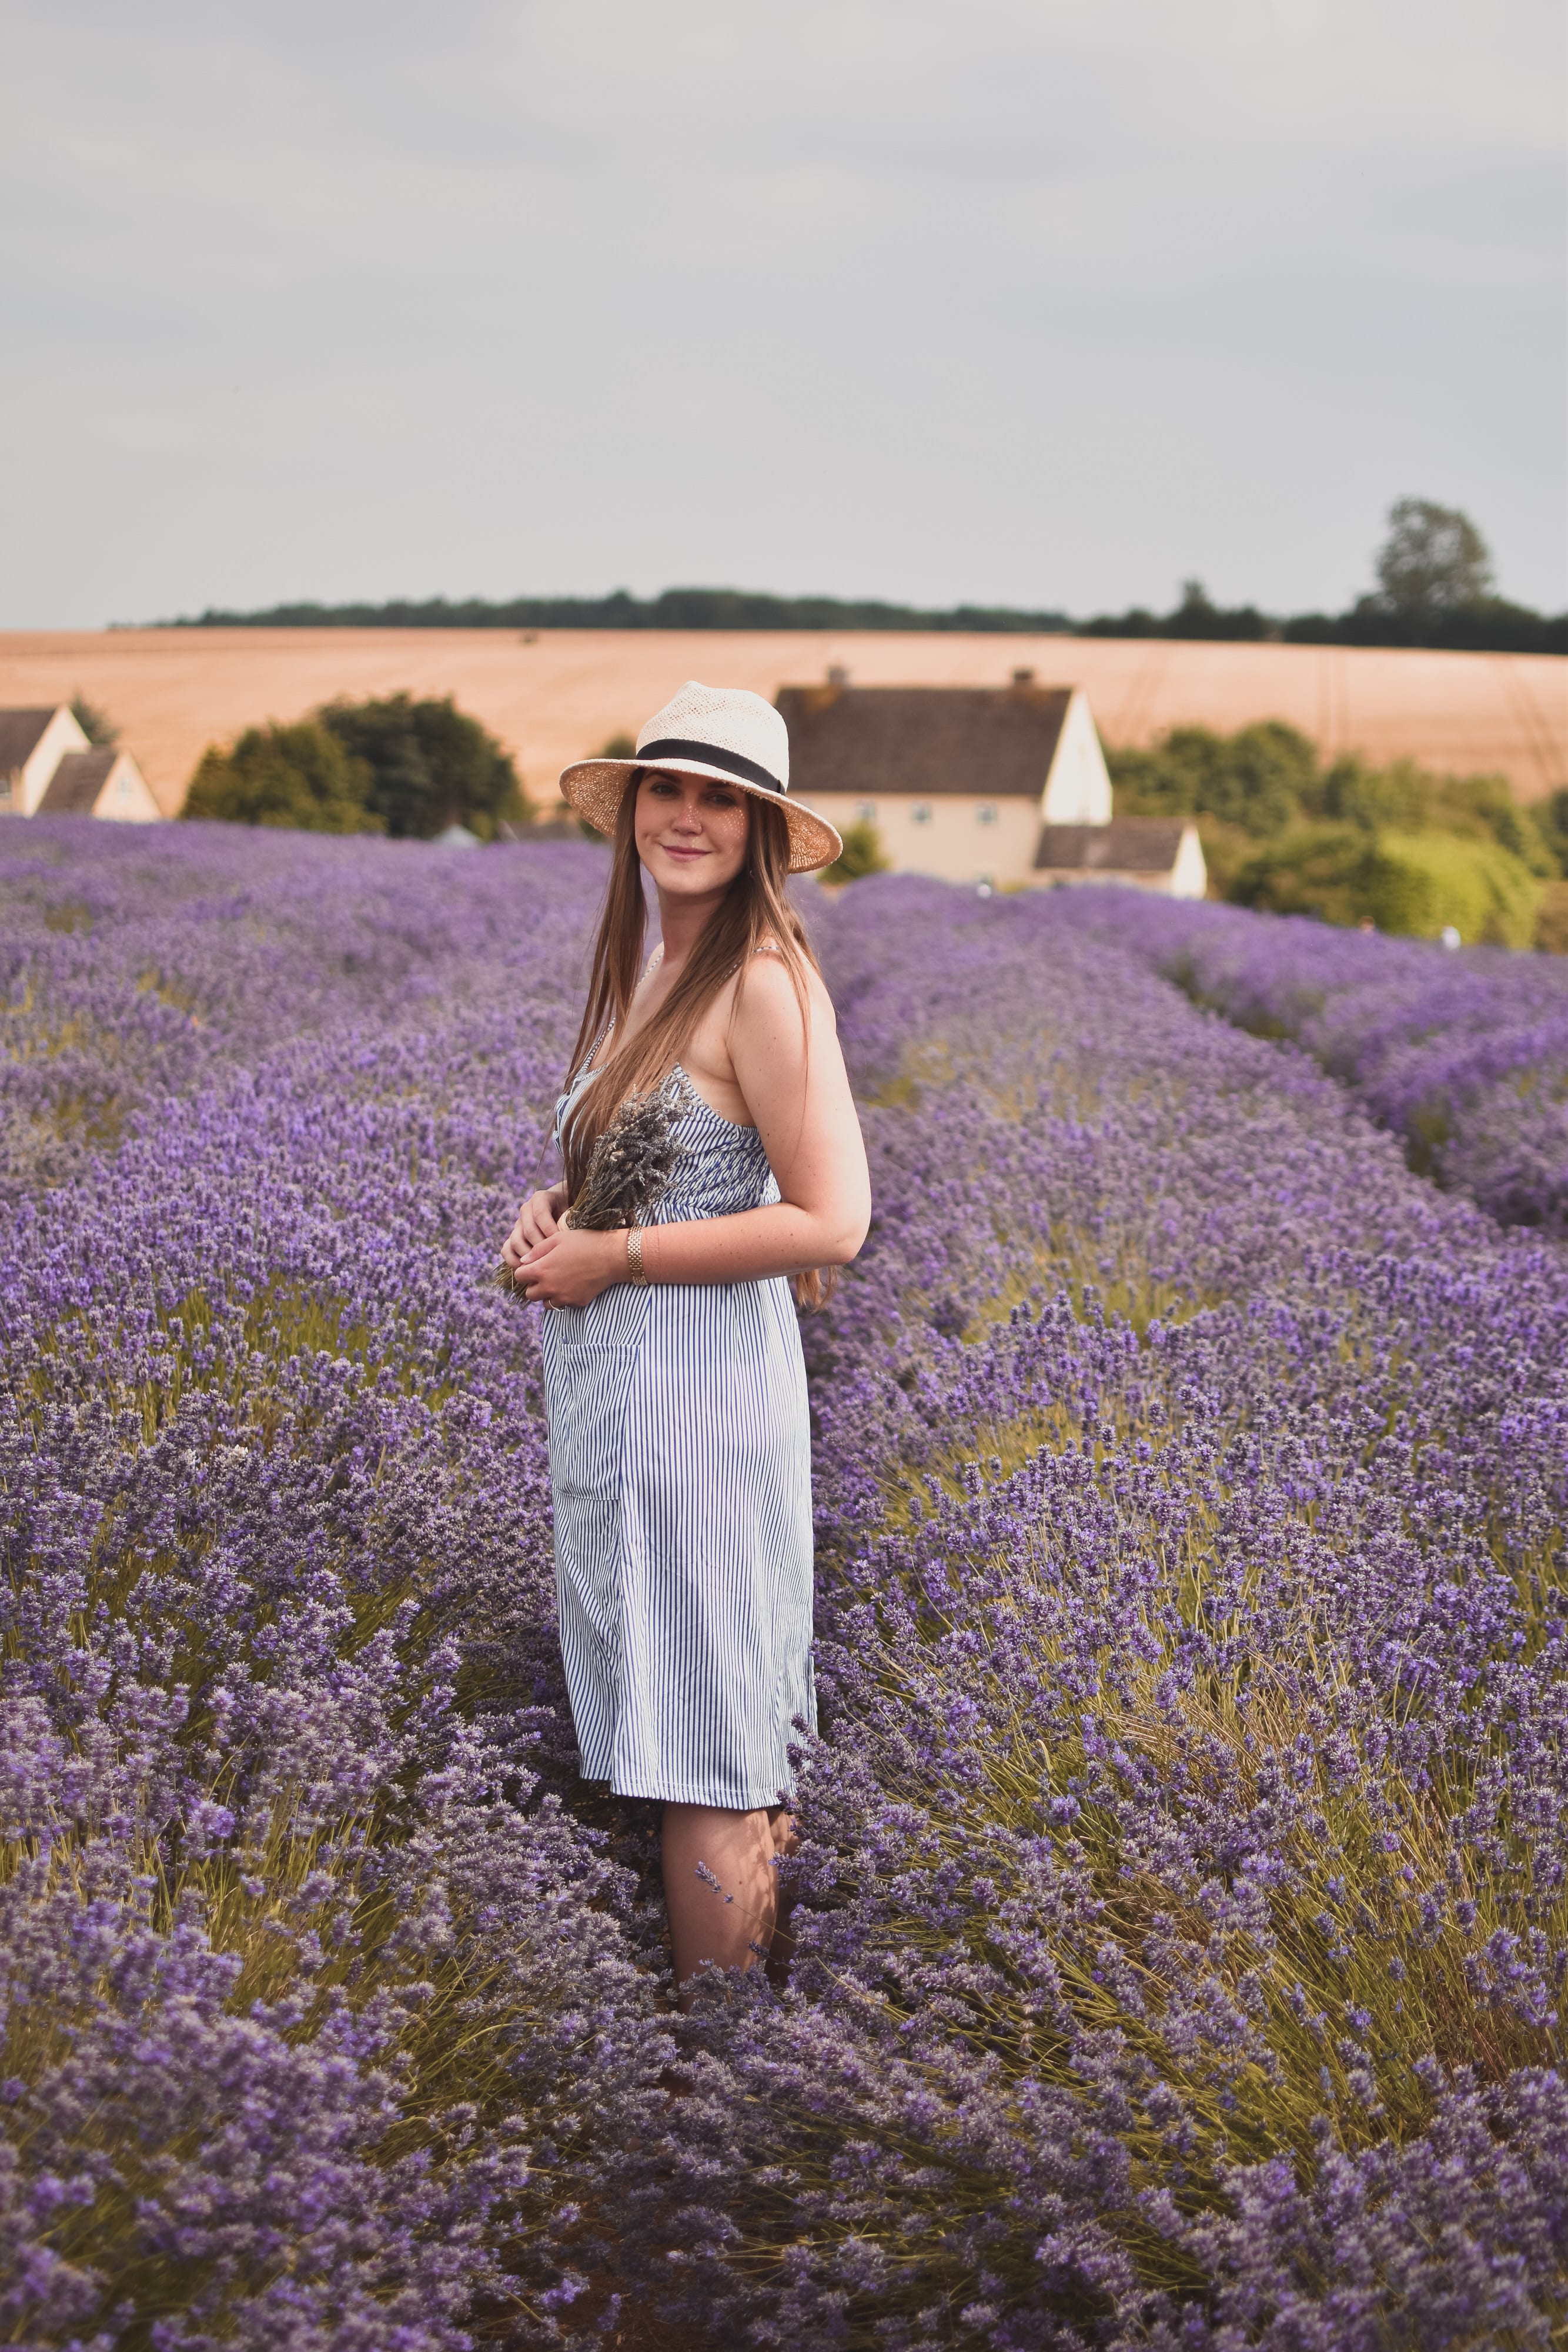 A Visit To Cotswold Lavender Field and Farm, England